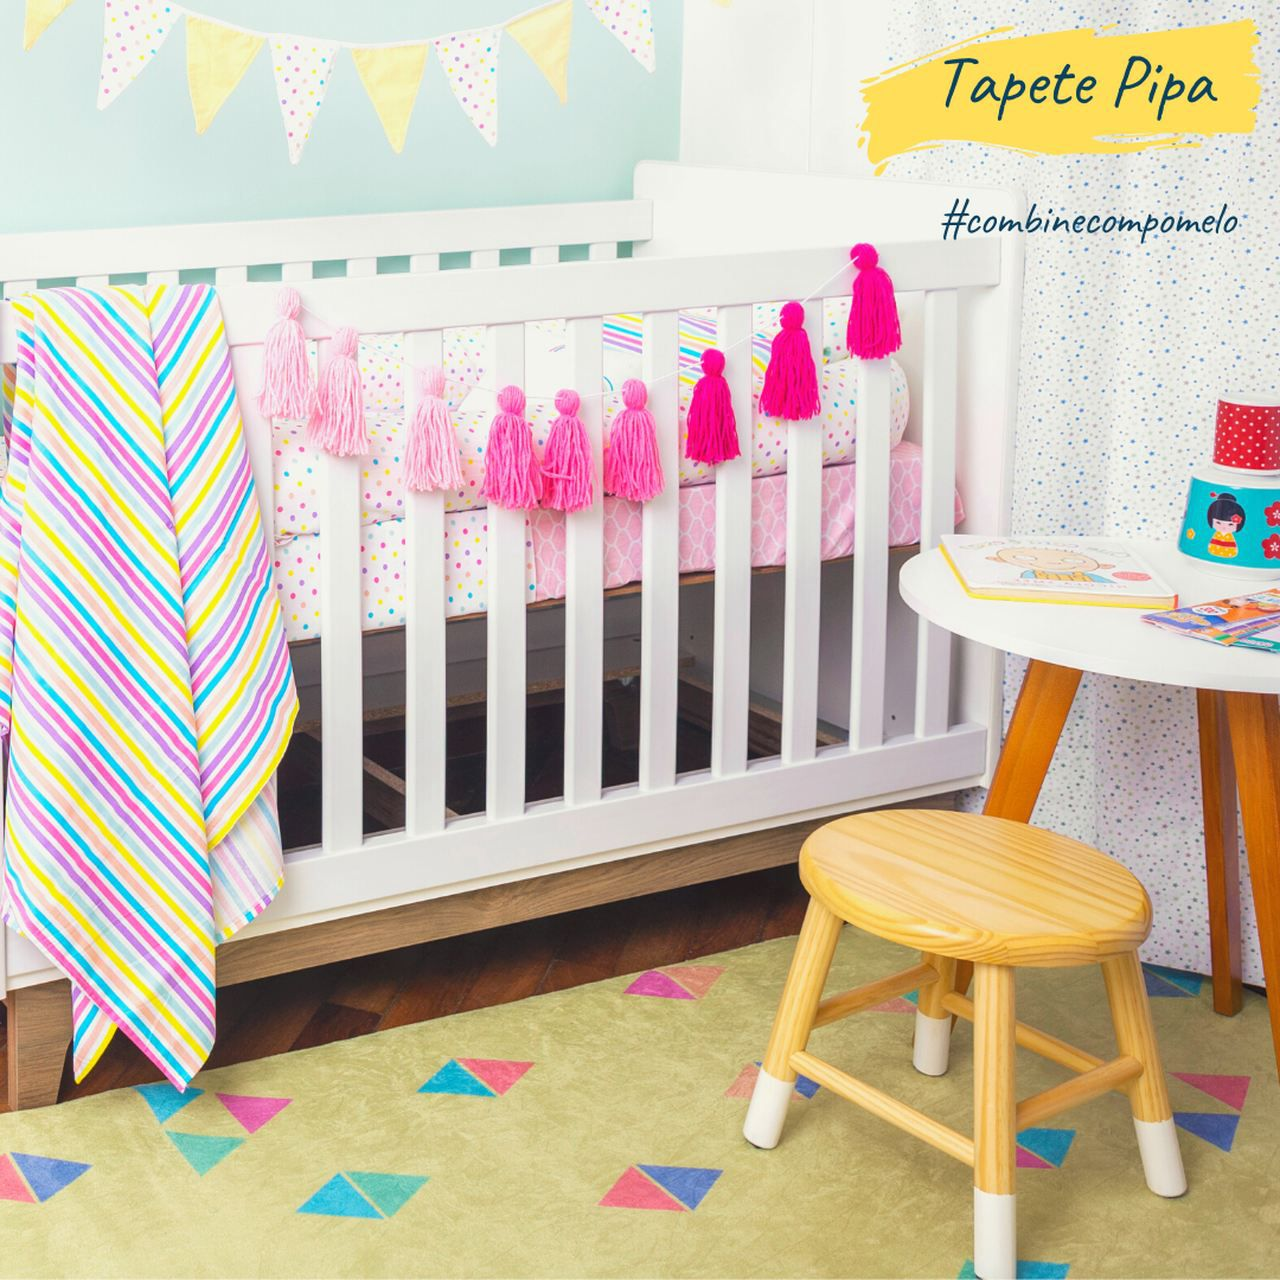 Tapete quarto infantil estampa Pipas  - Pomelo Decor